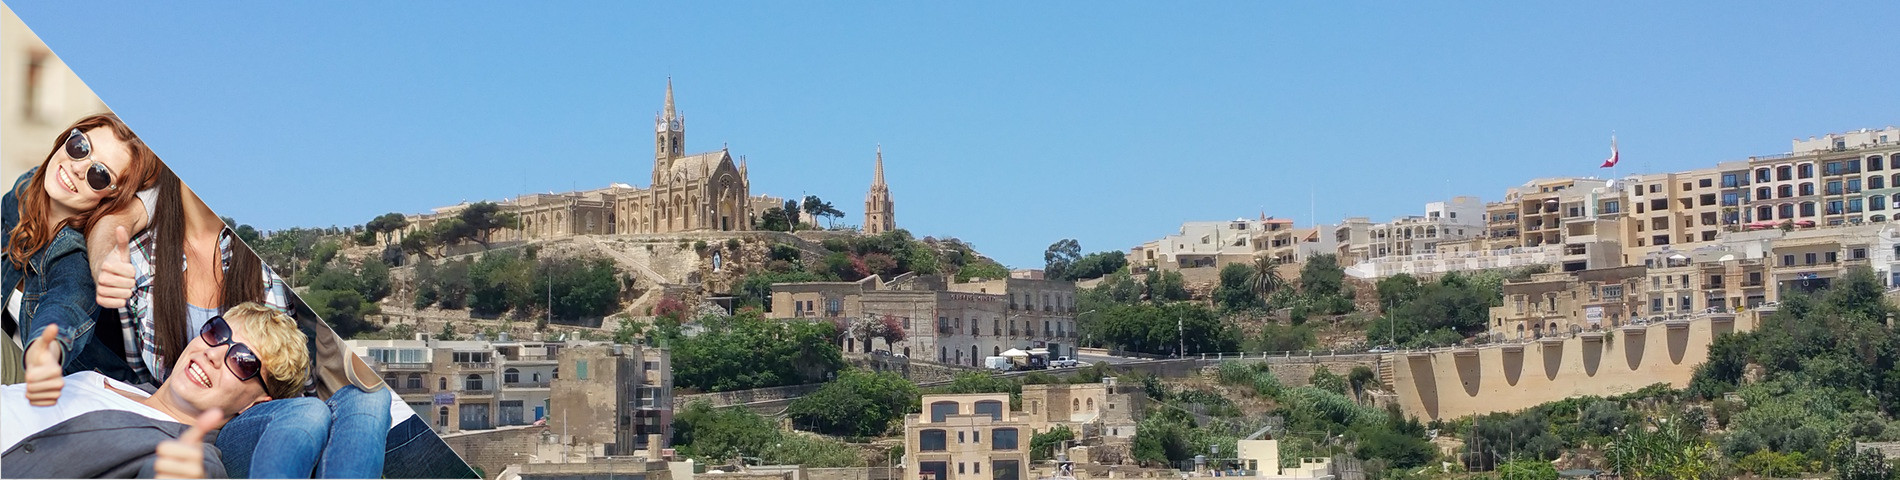 Malta - School Trips / Groups